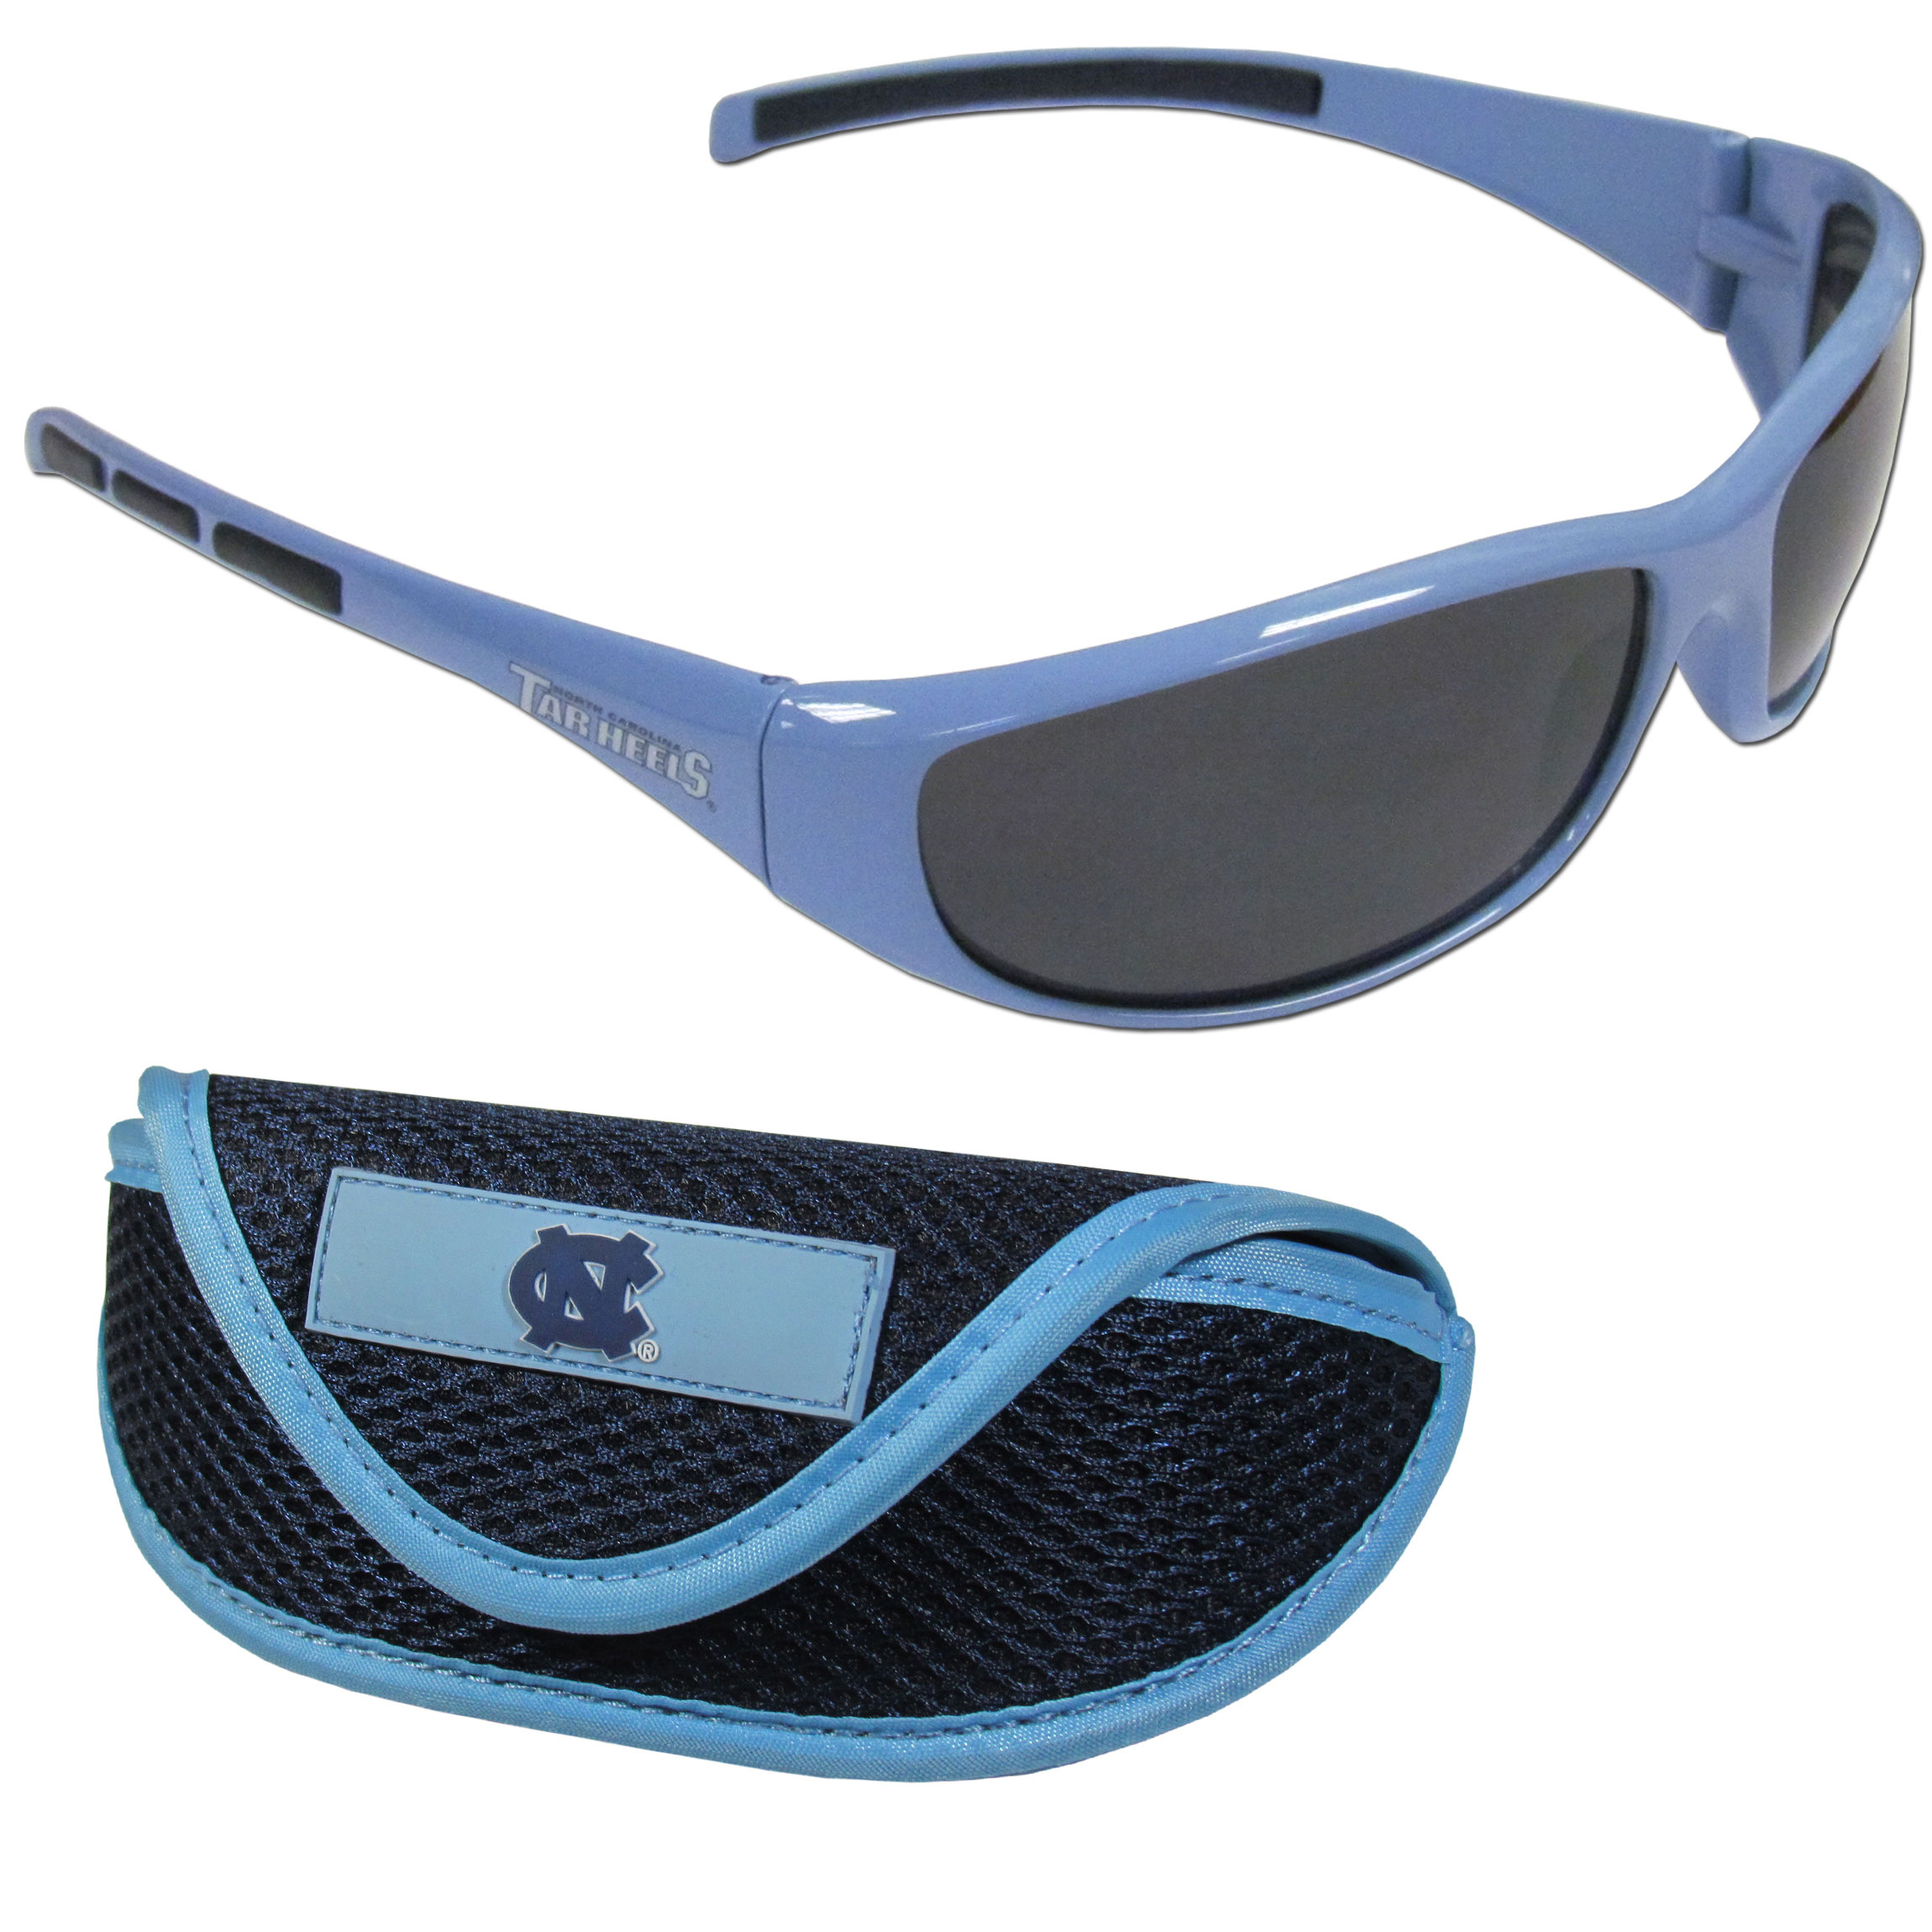 N. Carolina Tar Heels Wrap Sunglass and Case Set - This great set includes a high quality pair of N. Carolina Tar Heels wrap sunglasses and soft sport carrying case.